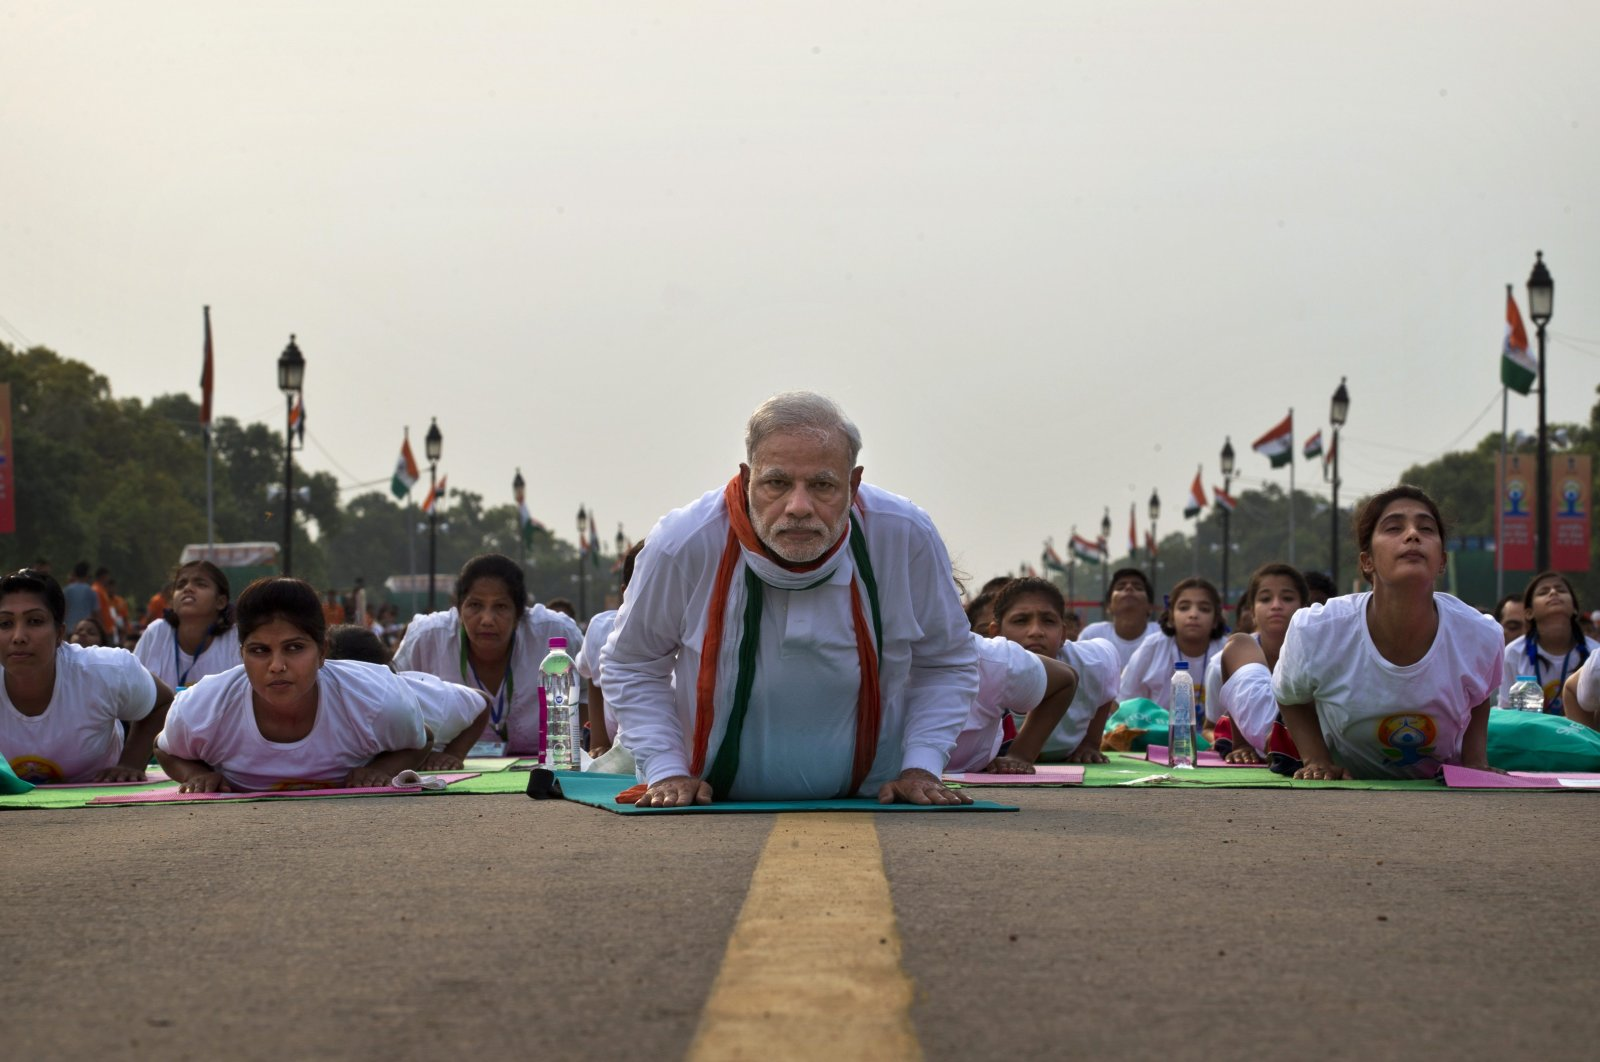 Indian Prime Minister Narednra Modi lies down on a mat as he performs yoga along with thousands of Indians on Rajpath, in New Delhi, India, June 21, 2015. (AP Photo)